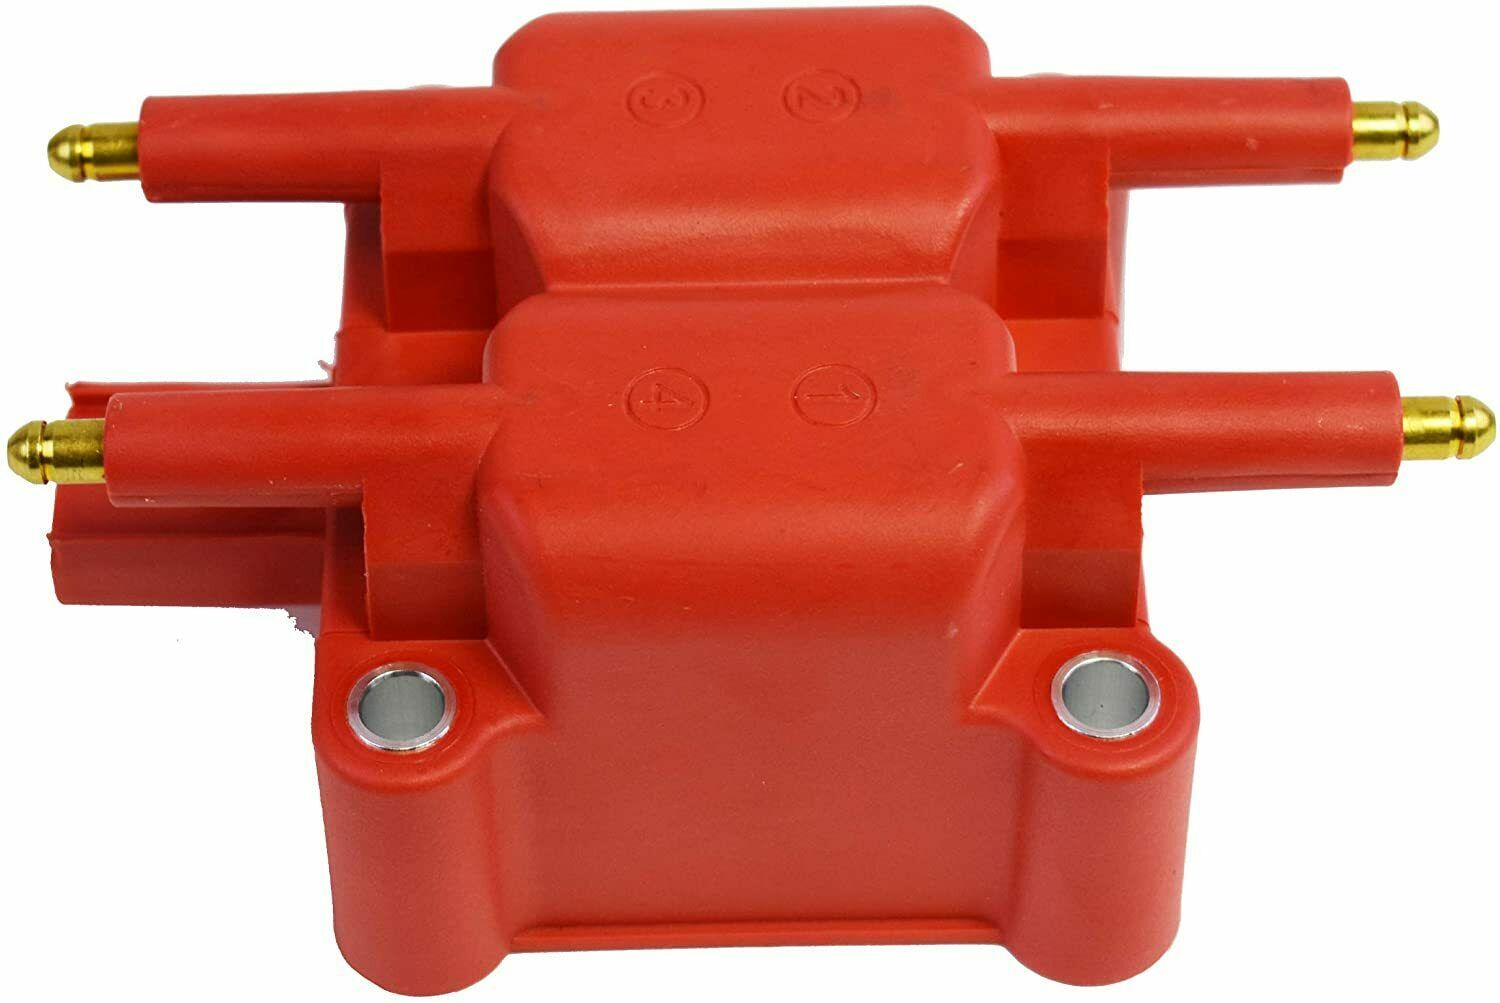 40K Volts High Output Ignition Coil For Mini Cooper, Dodge, Chrysler, Pack Red